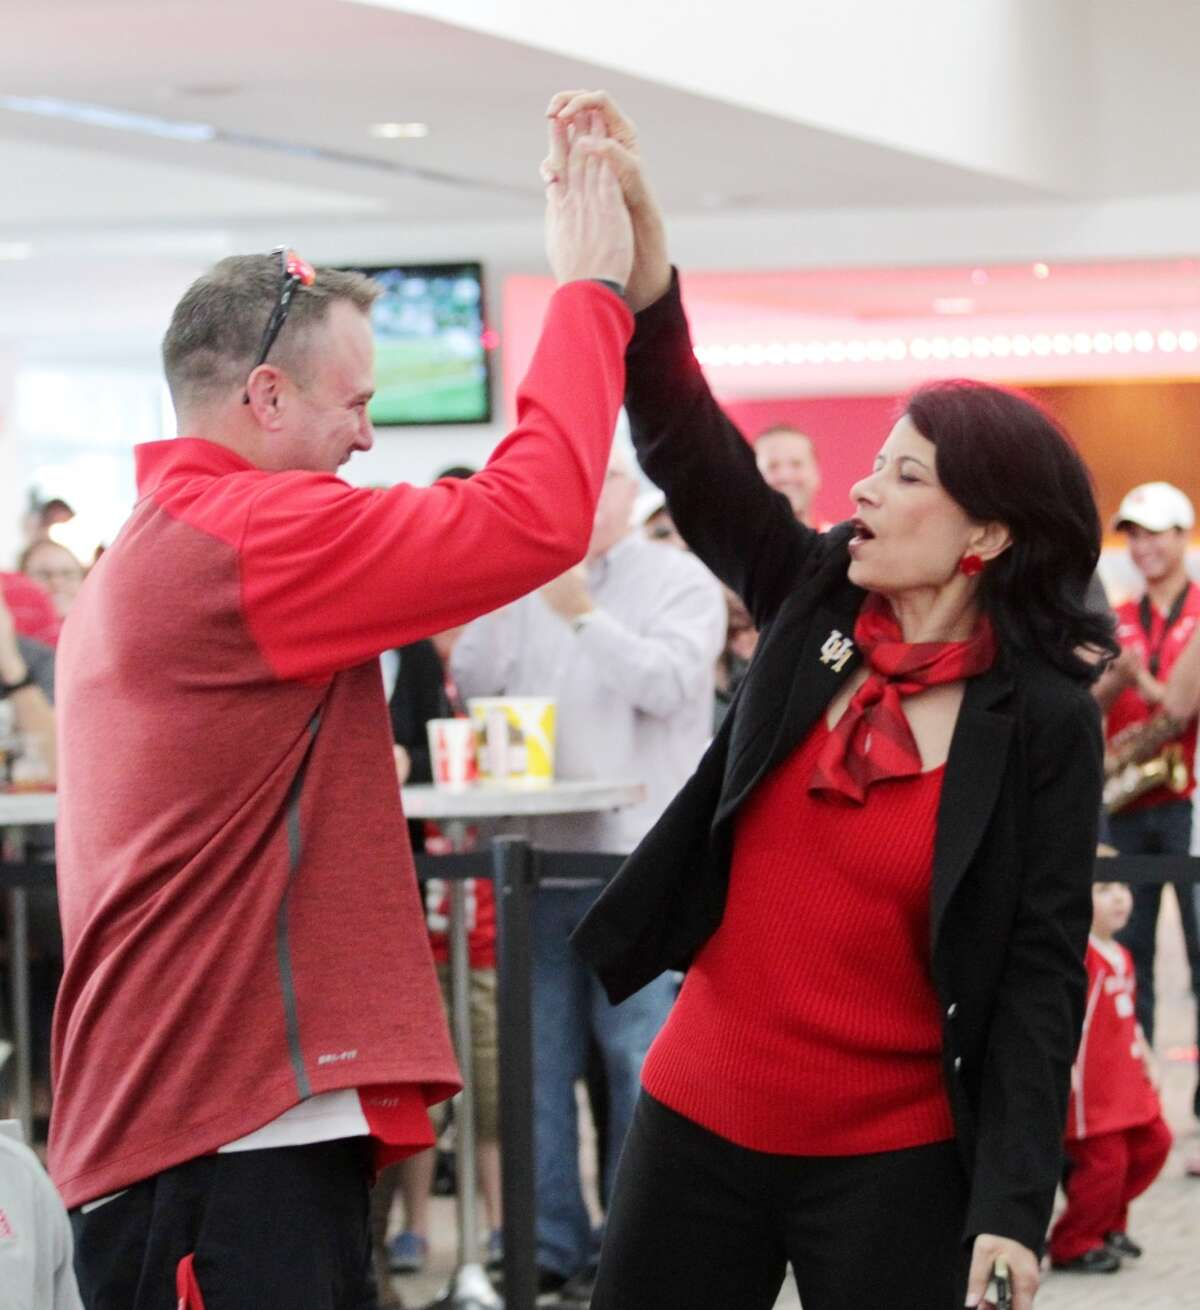 University of Houston system chancellor Renu Khator high fives head football coach Tom Herman at a bowl-selection watch party in the TDECU Stadium club Sunday, Dec. 6, 2015, in Houston. Houston will play Florida State in the Chick-fil-A Peach Bowl on Dec. 31. ( Jon Shapley / Houston Chronicle )